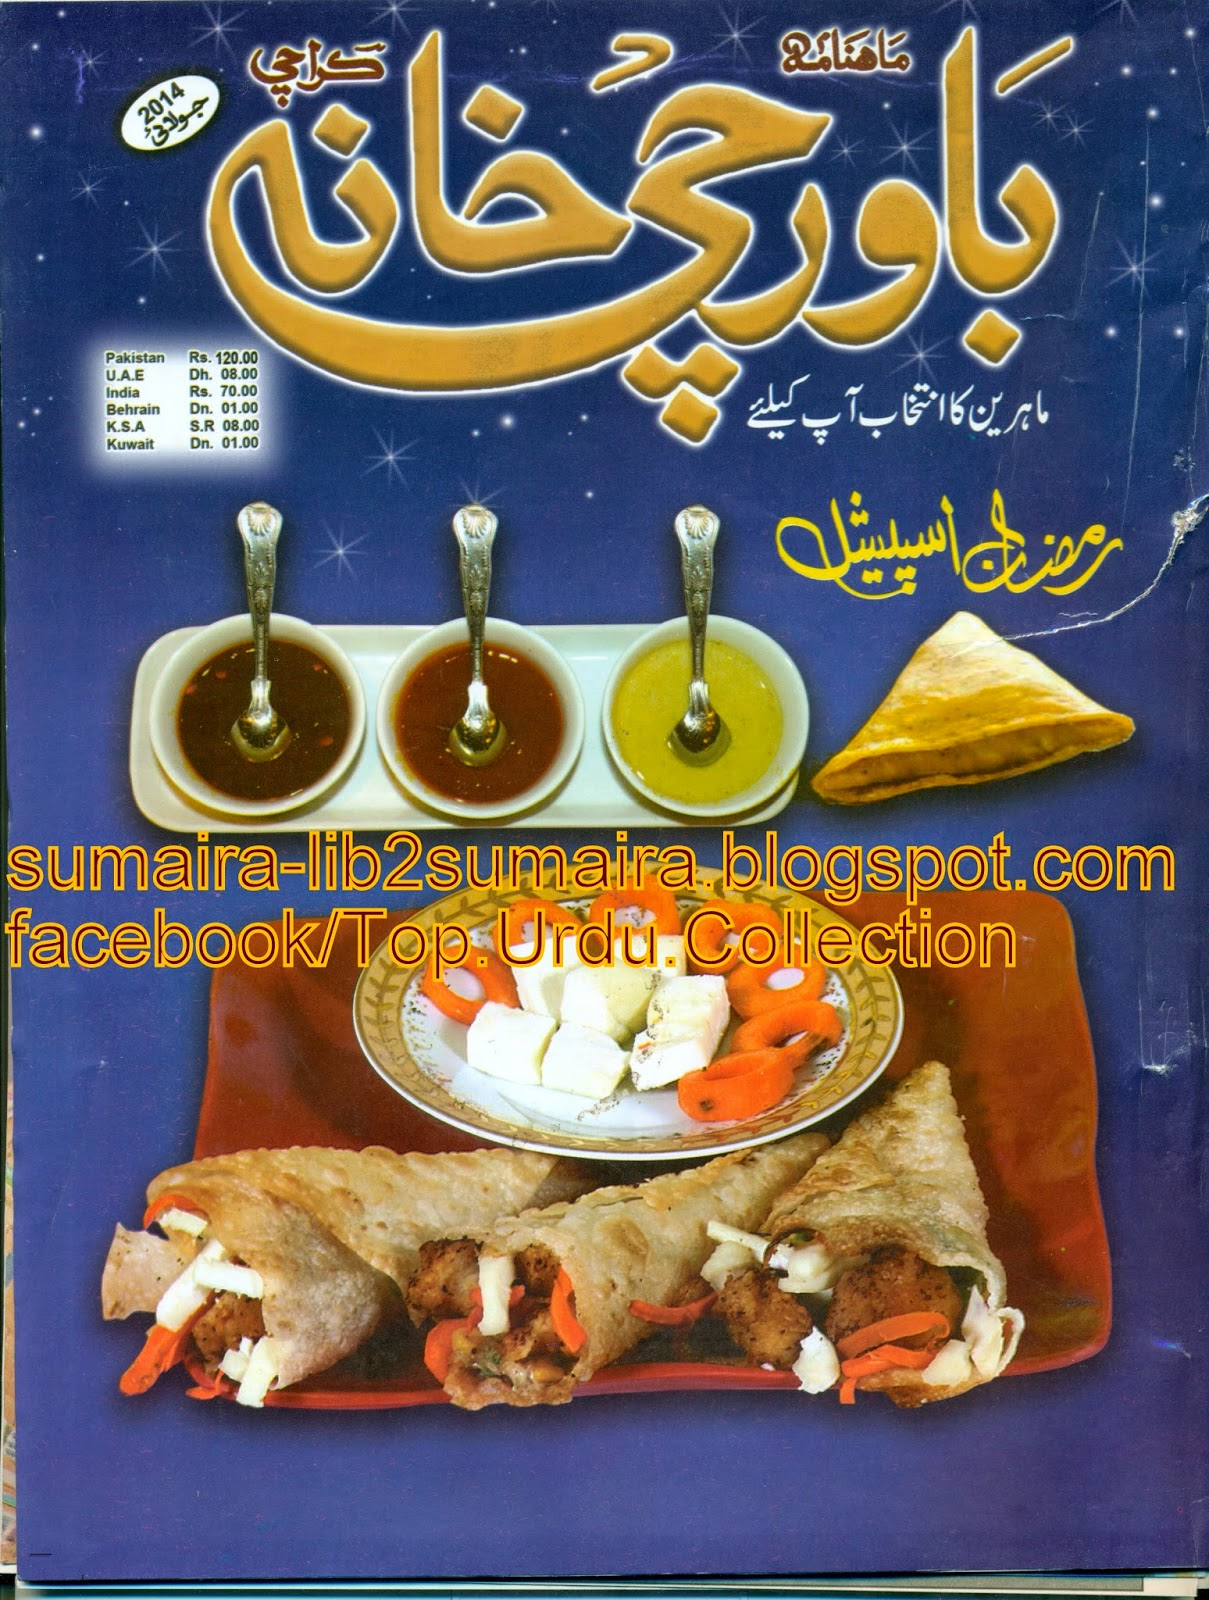 scan0009 - Bawarchikhana magazine july 2014 ramazan special